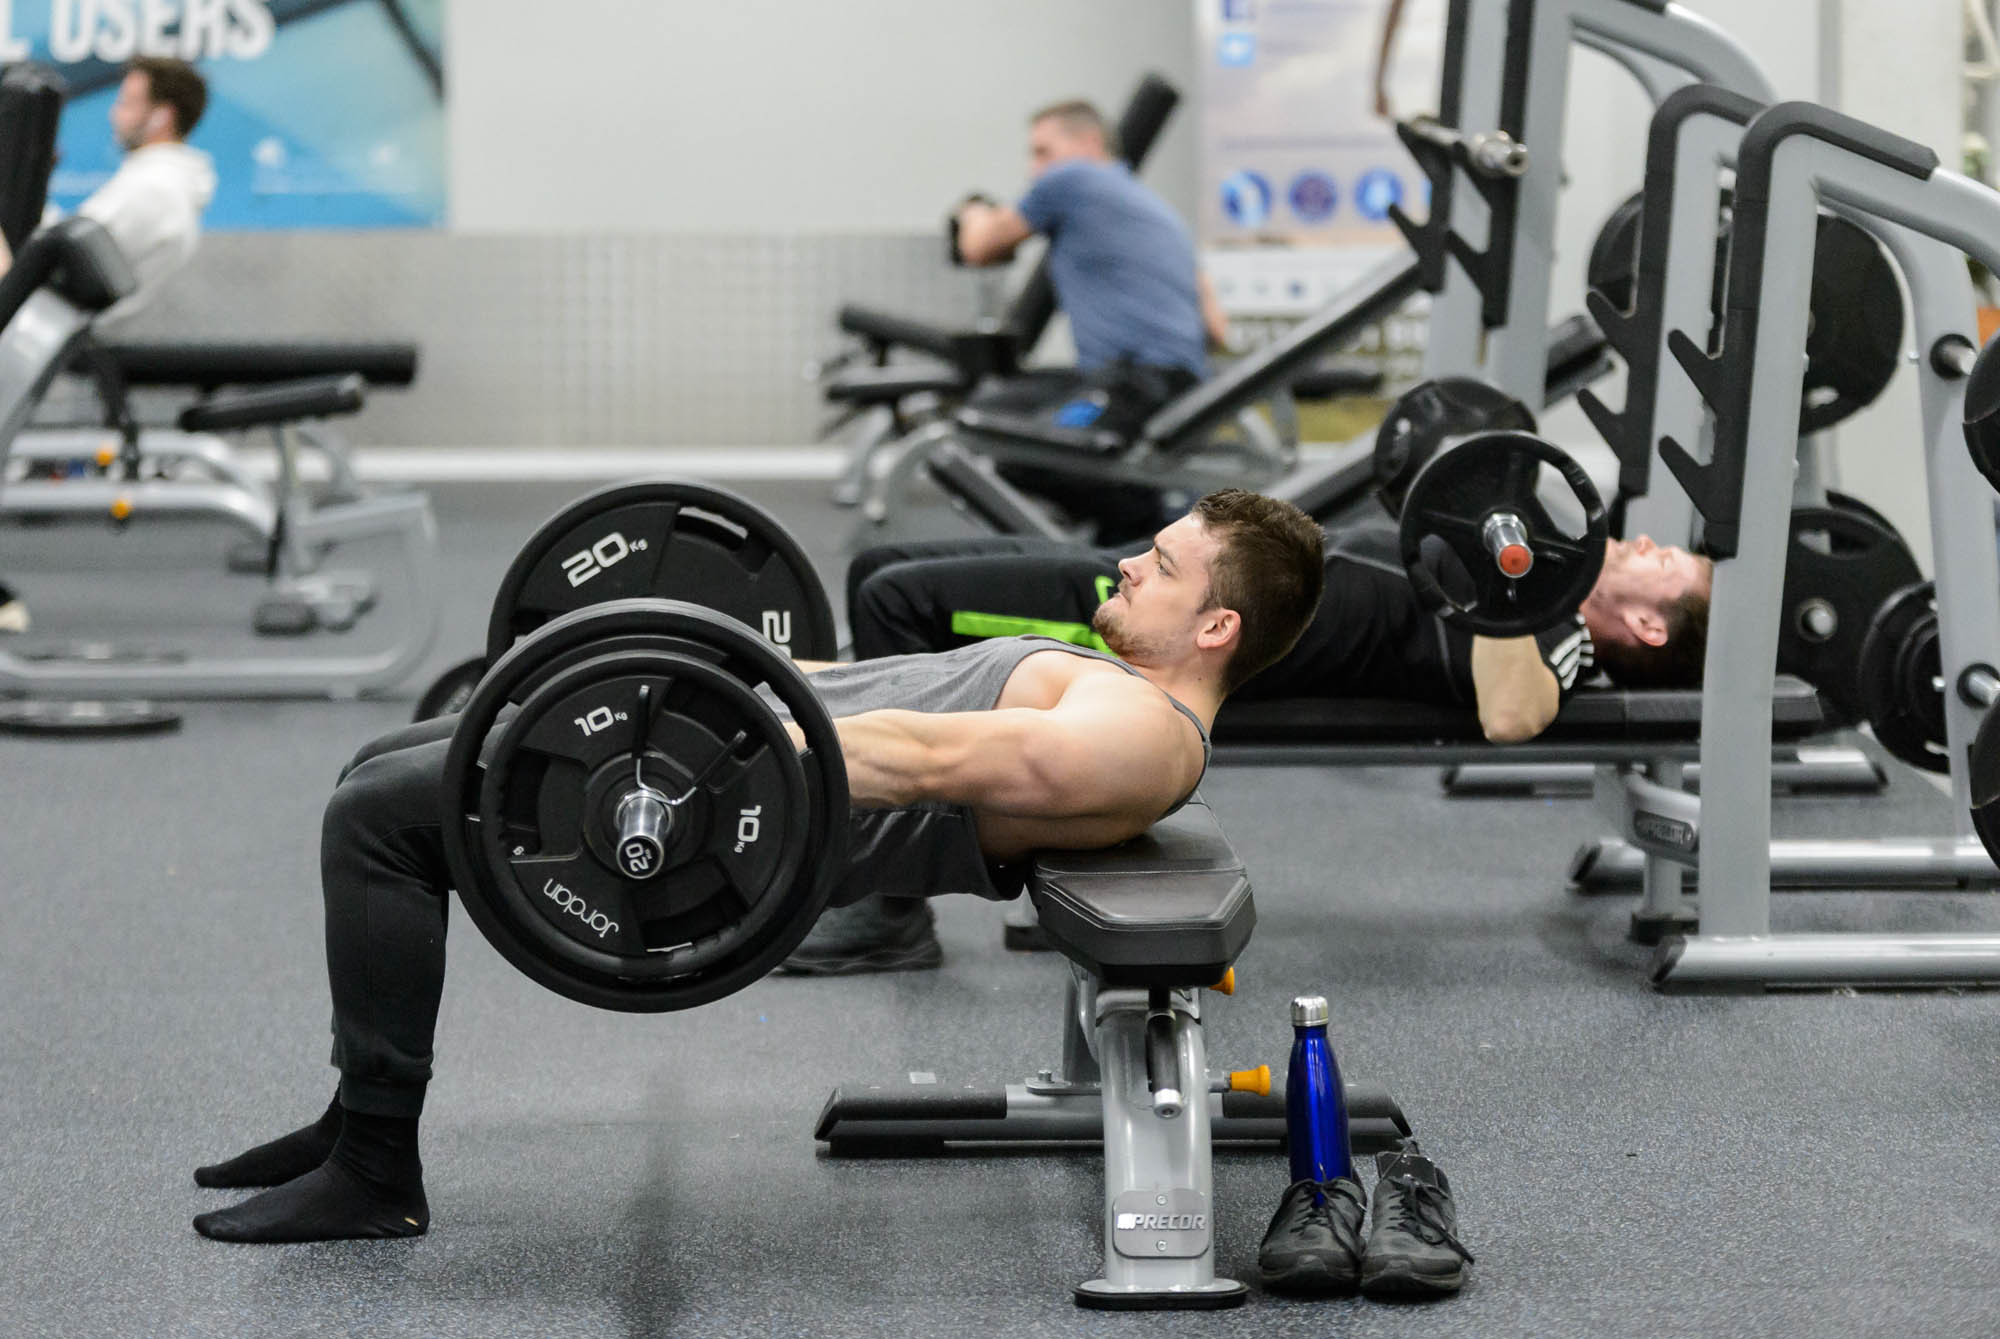 A man does some heavy free weights in a gym